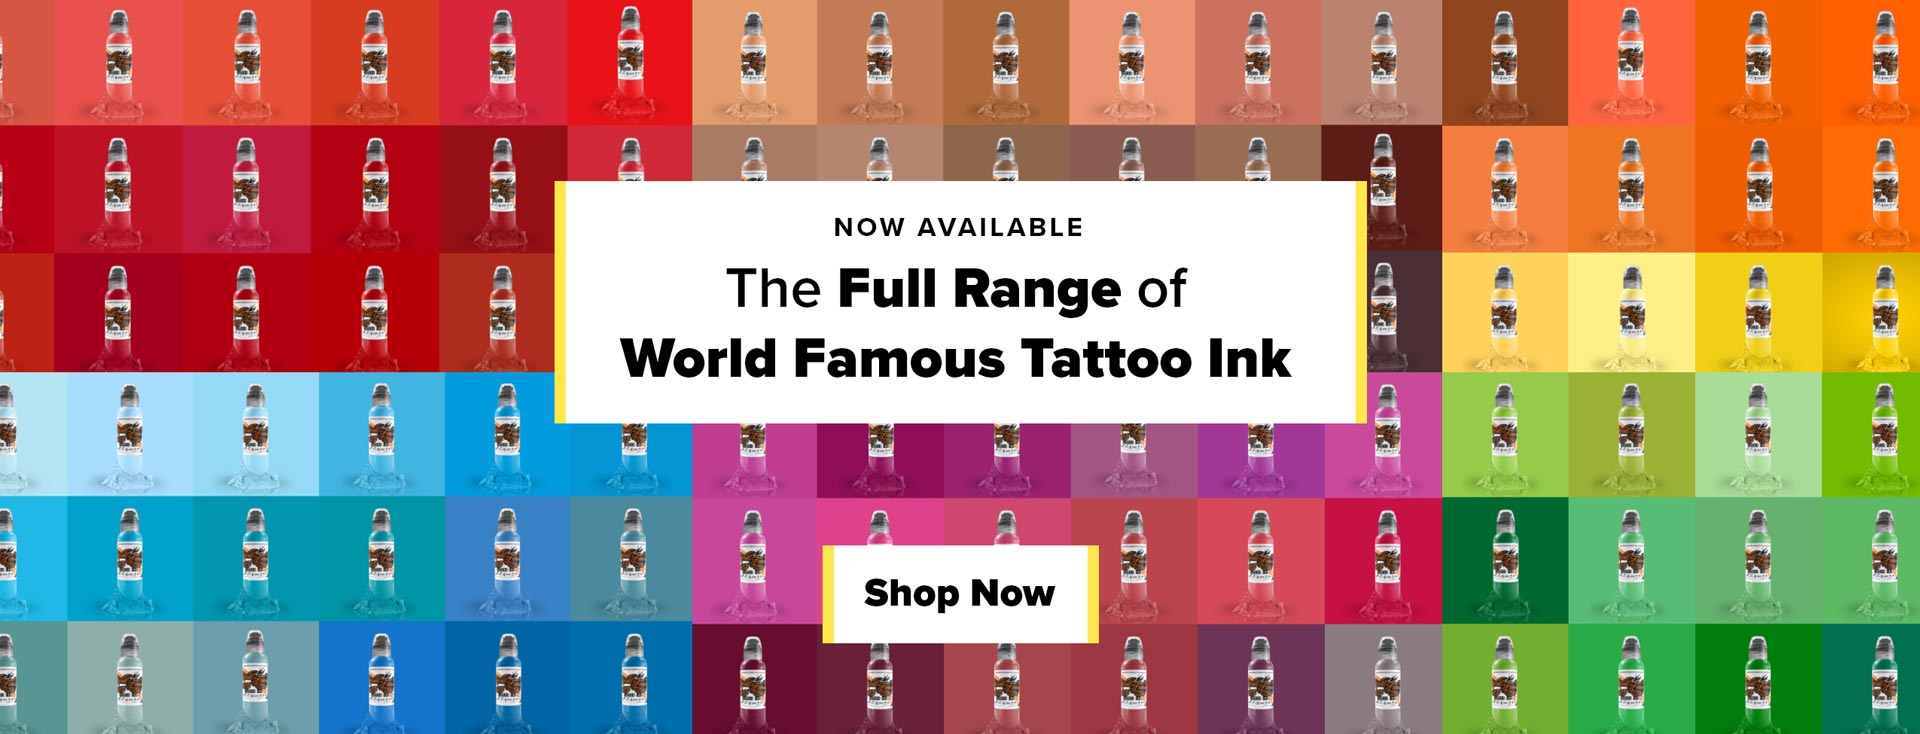 Swatches of world famous tattoo ink announcing the carrying of the full line of ink